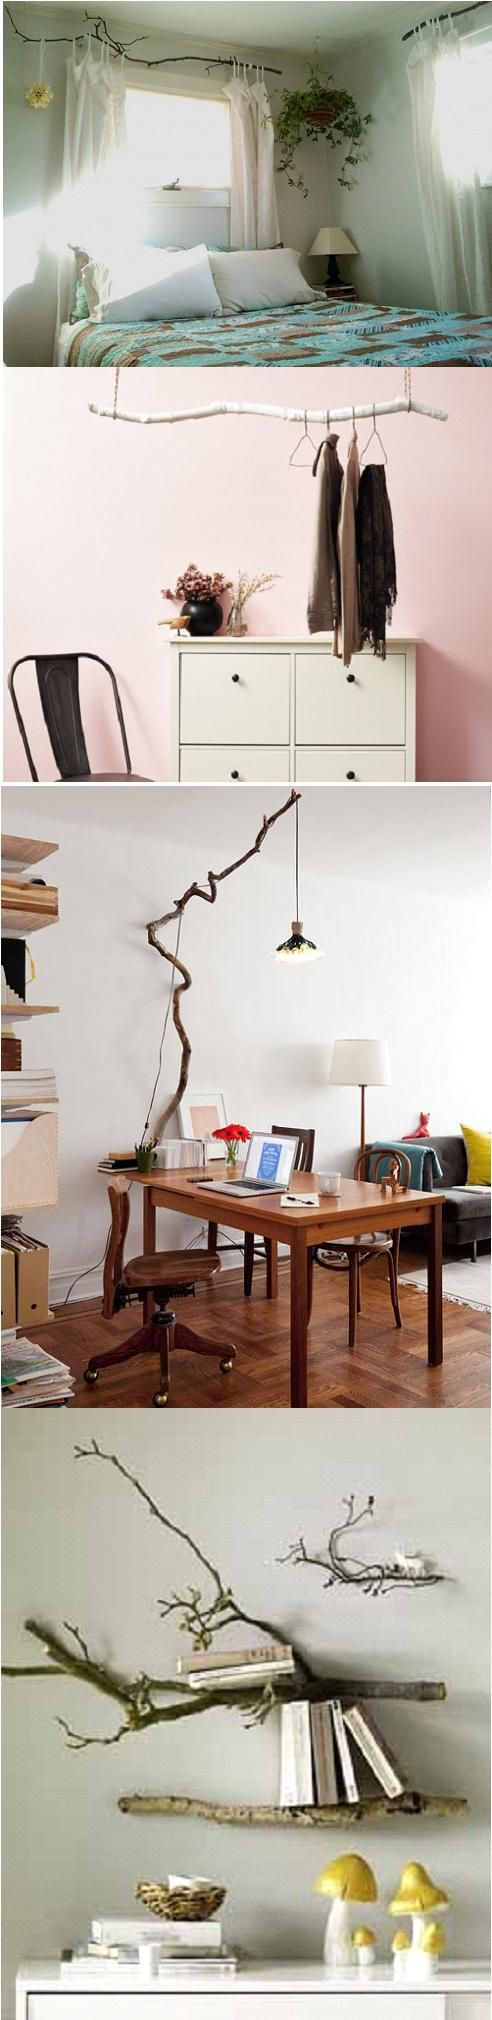 Decorating with tree branches #diy                                                                                                                                                                                 More